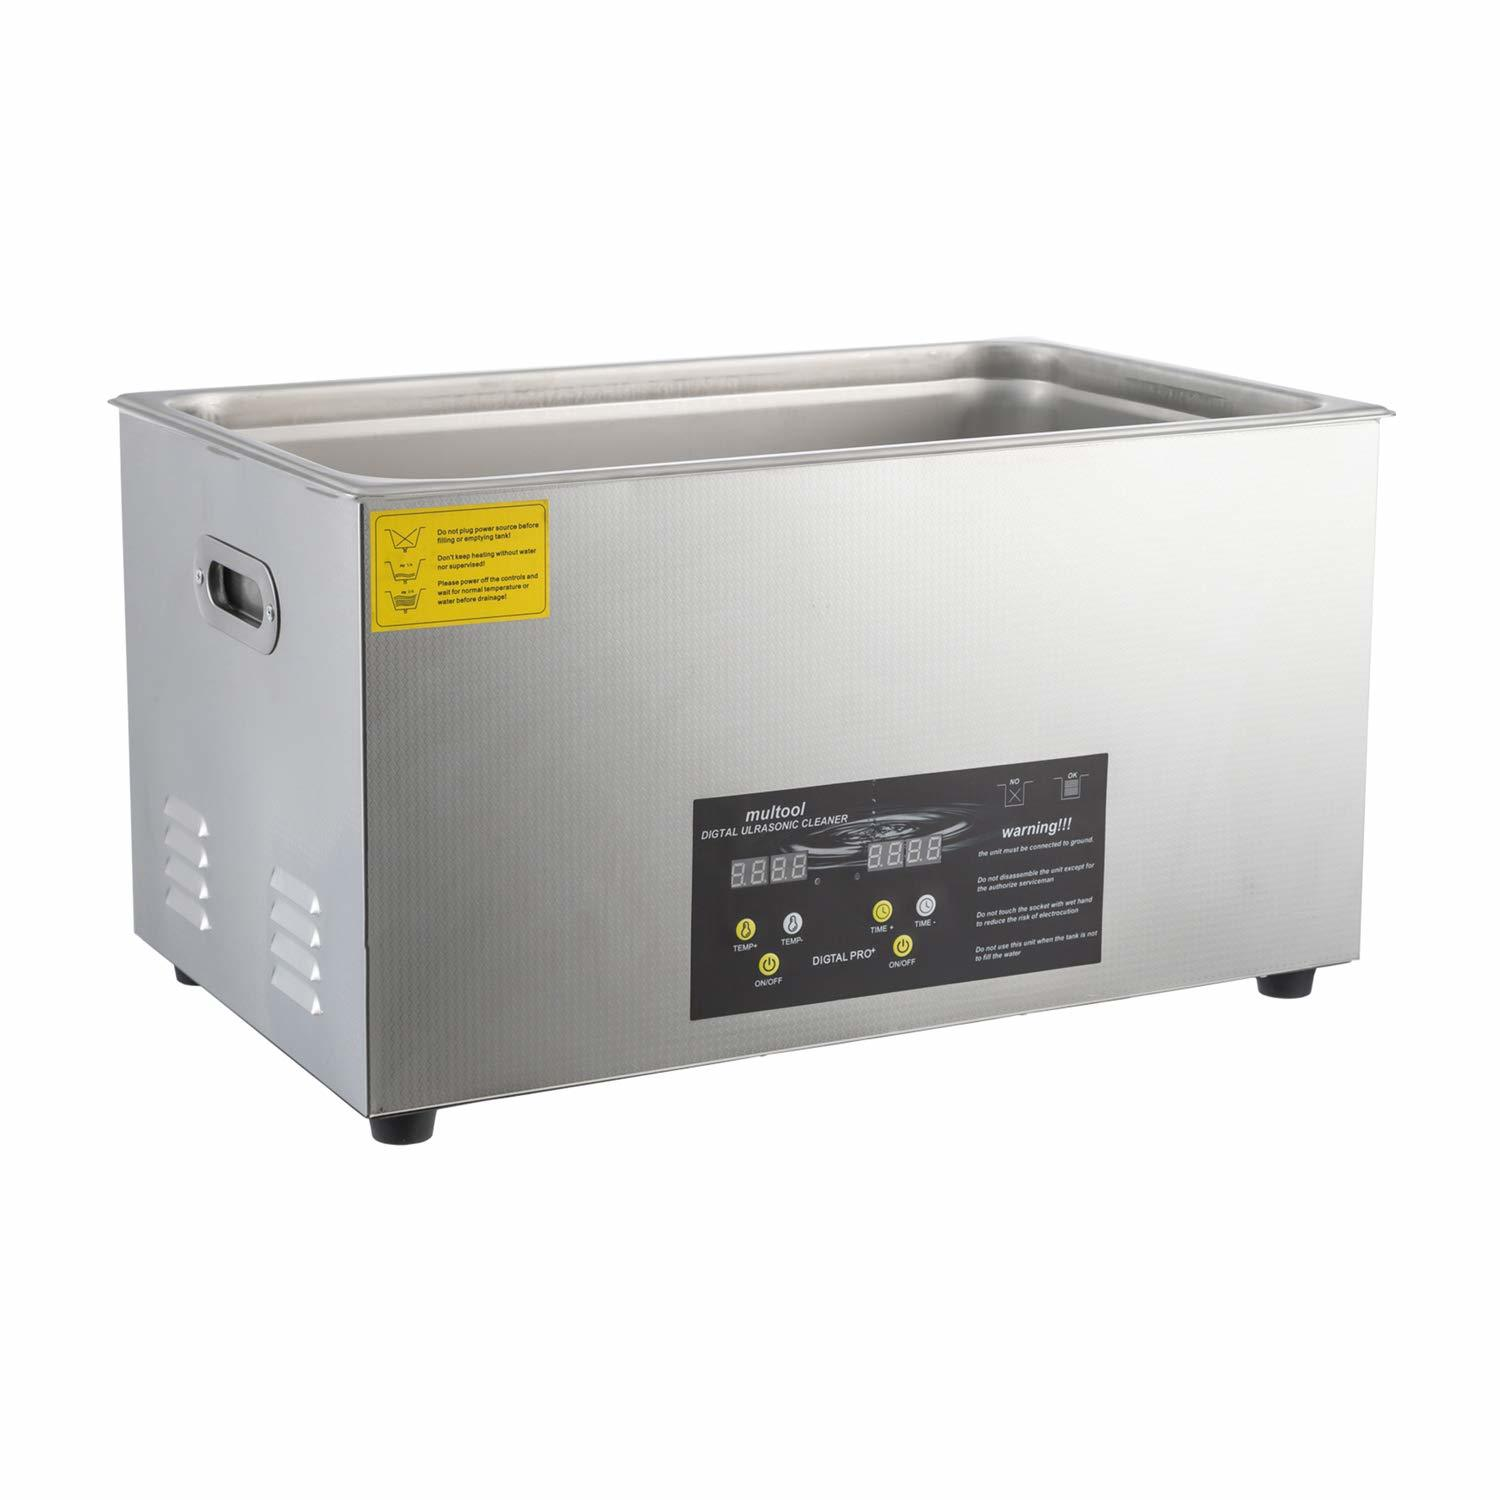 Taihan 's Ultrasonic Cleaner with Heater For Carburetors & Guns